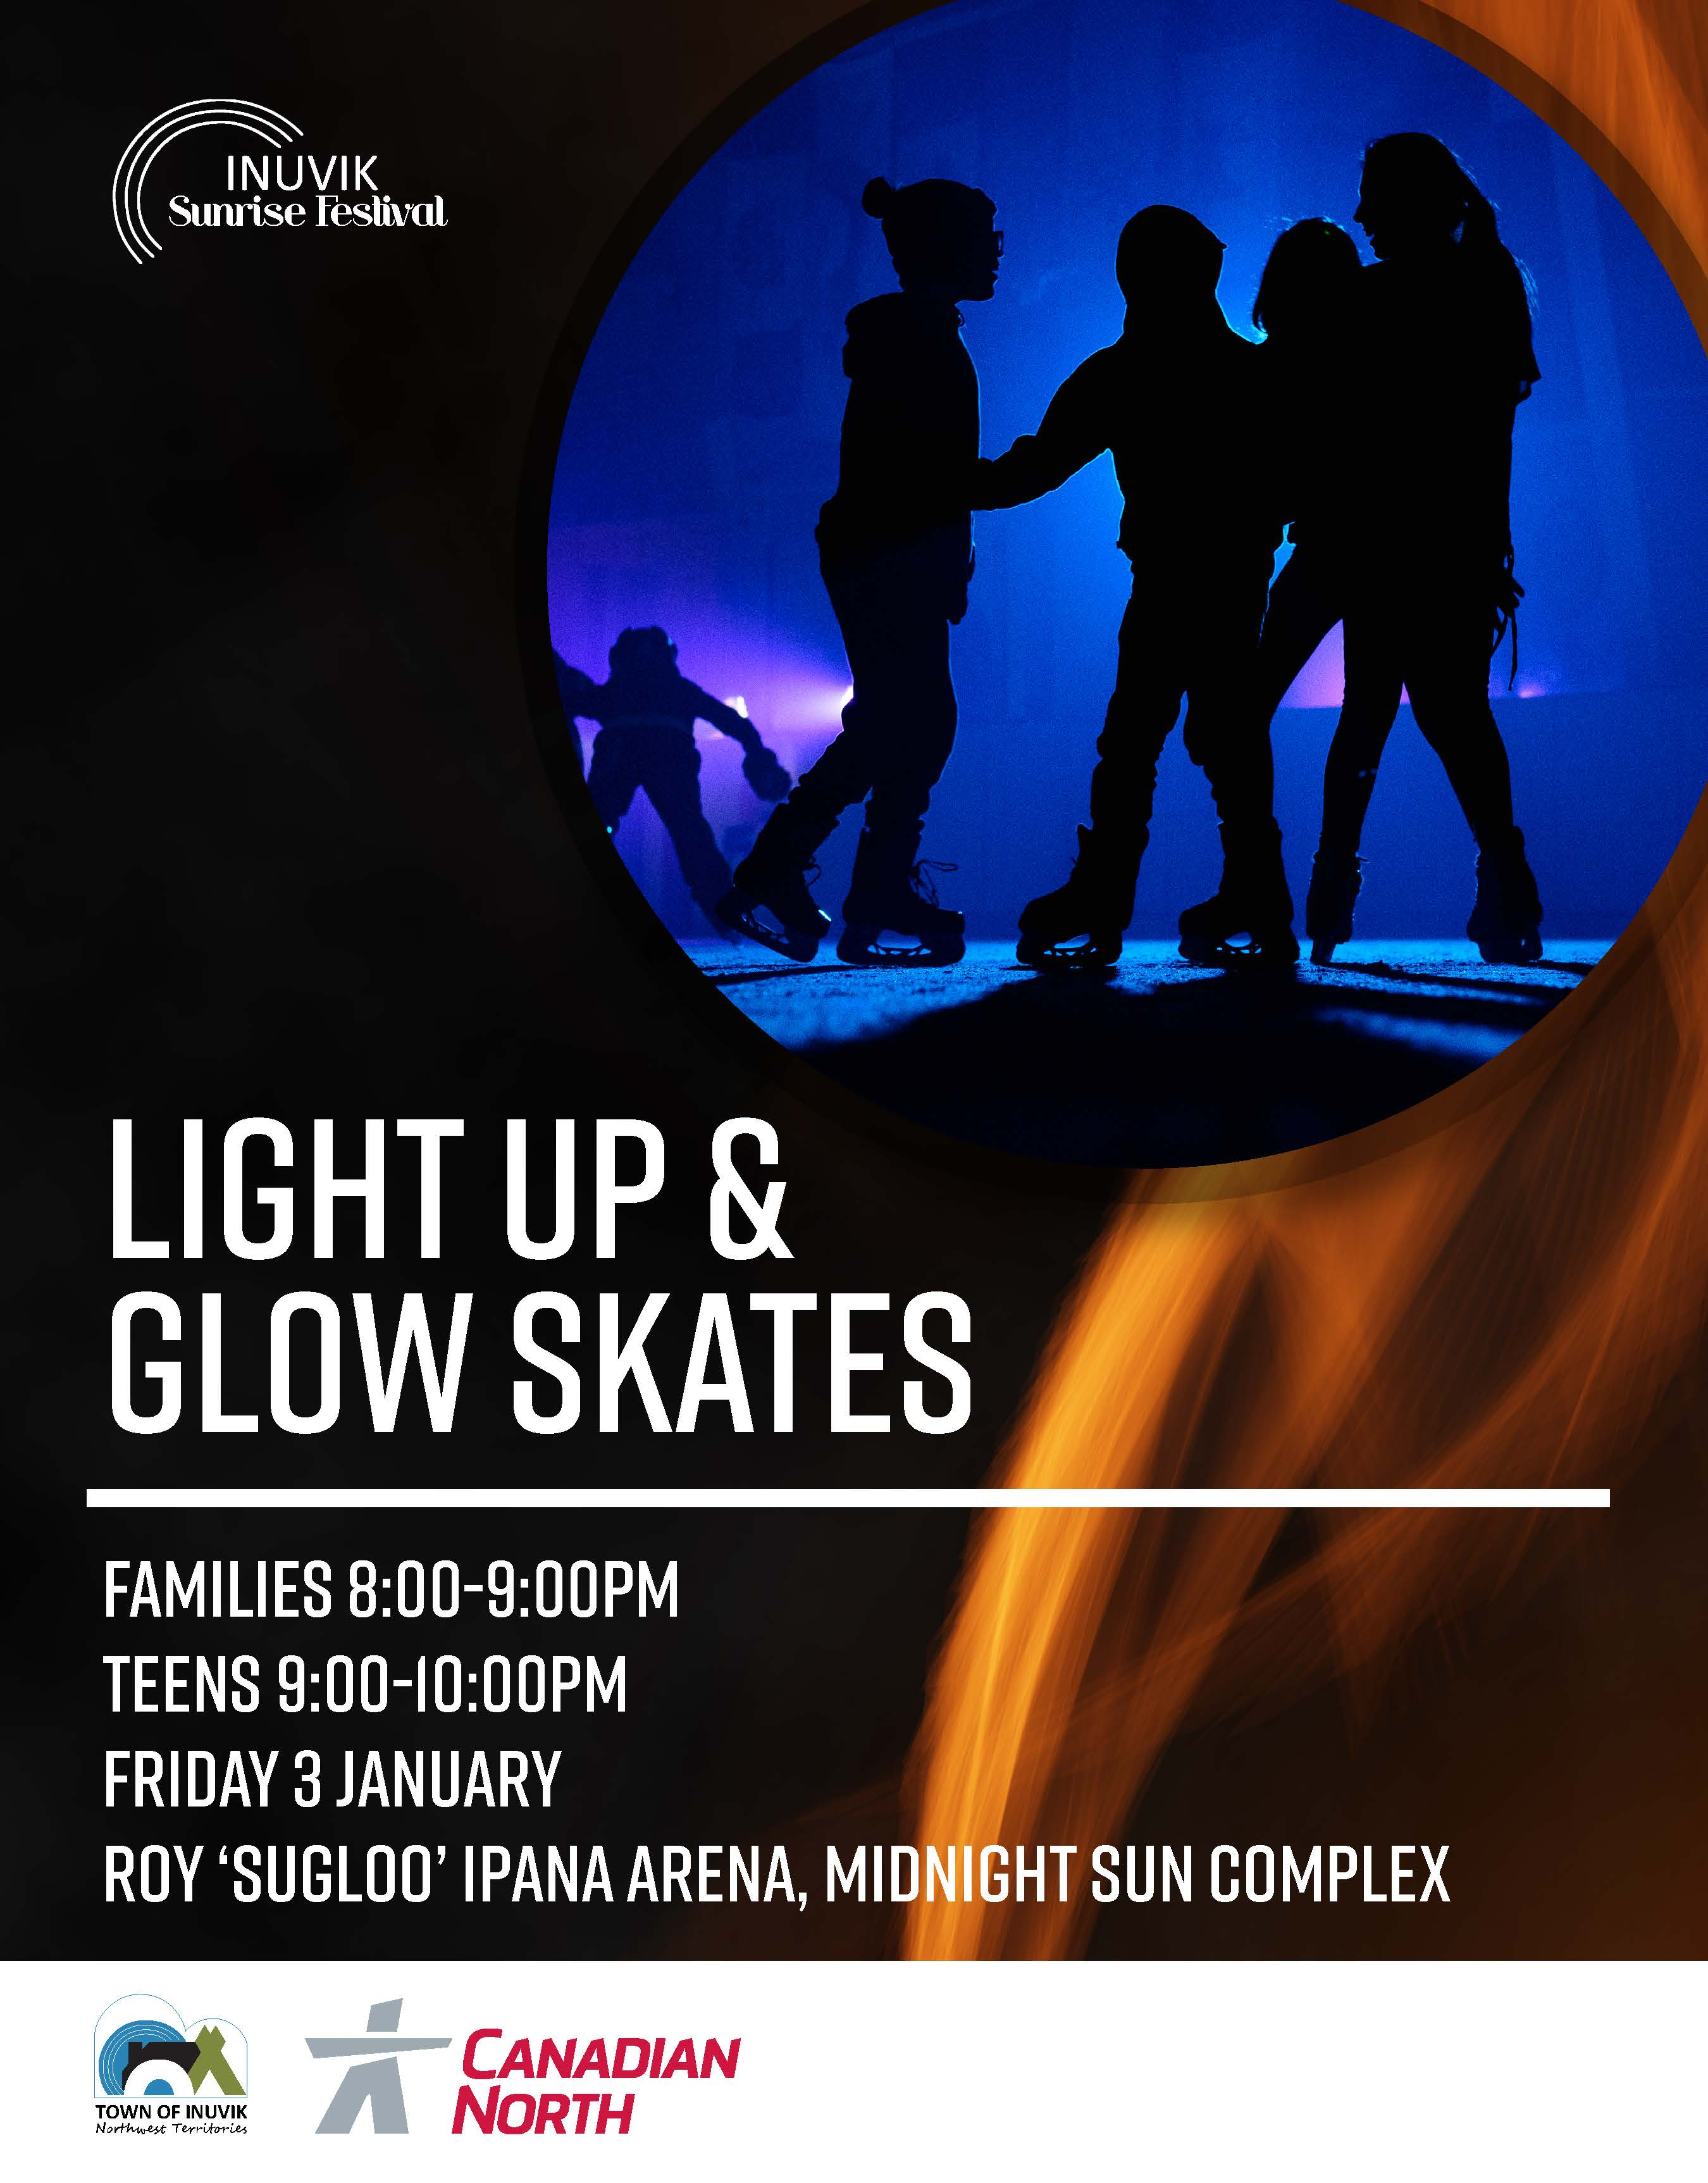 Light Up & Glow Skate Poster